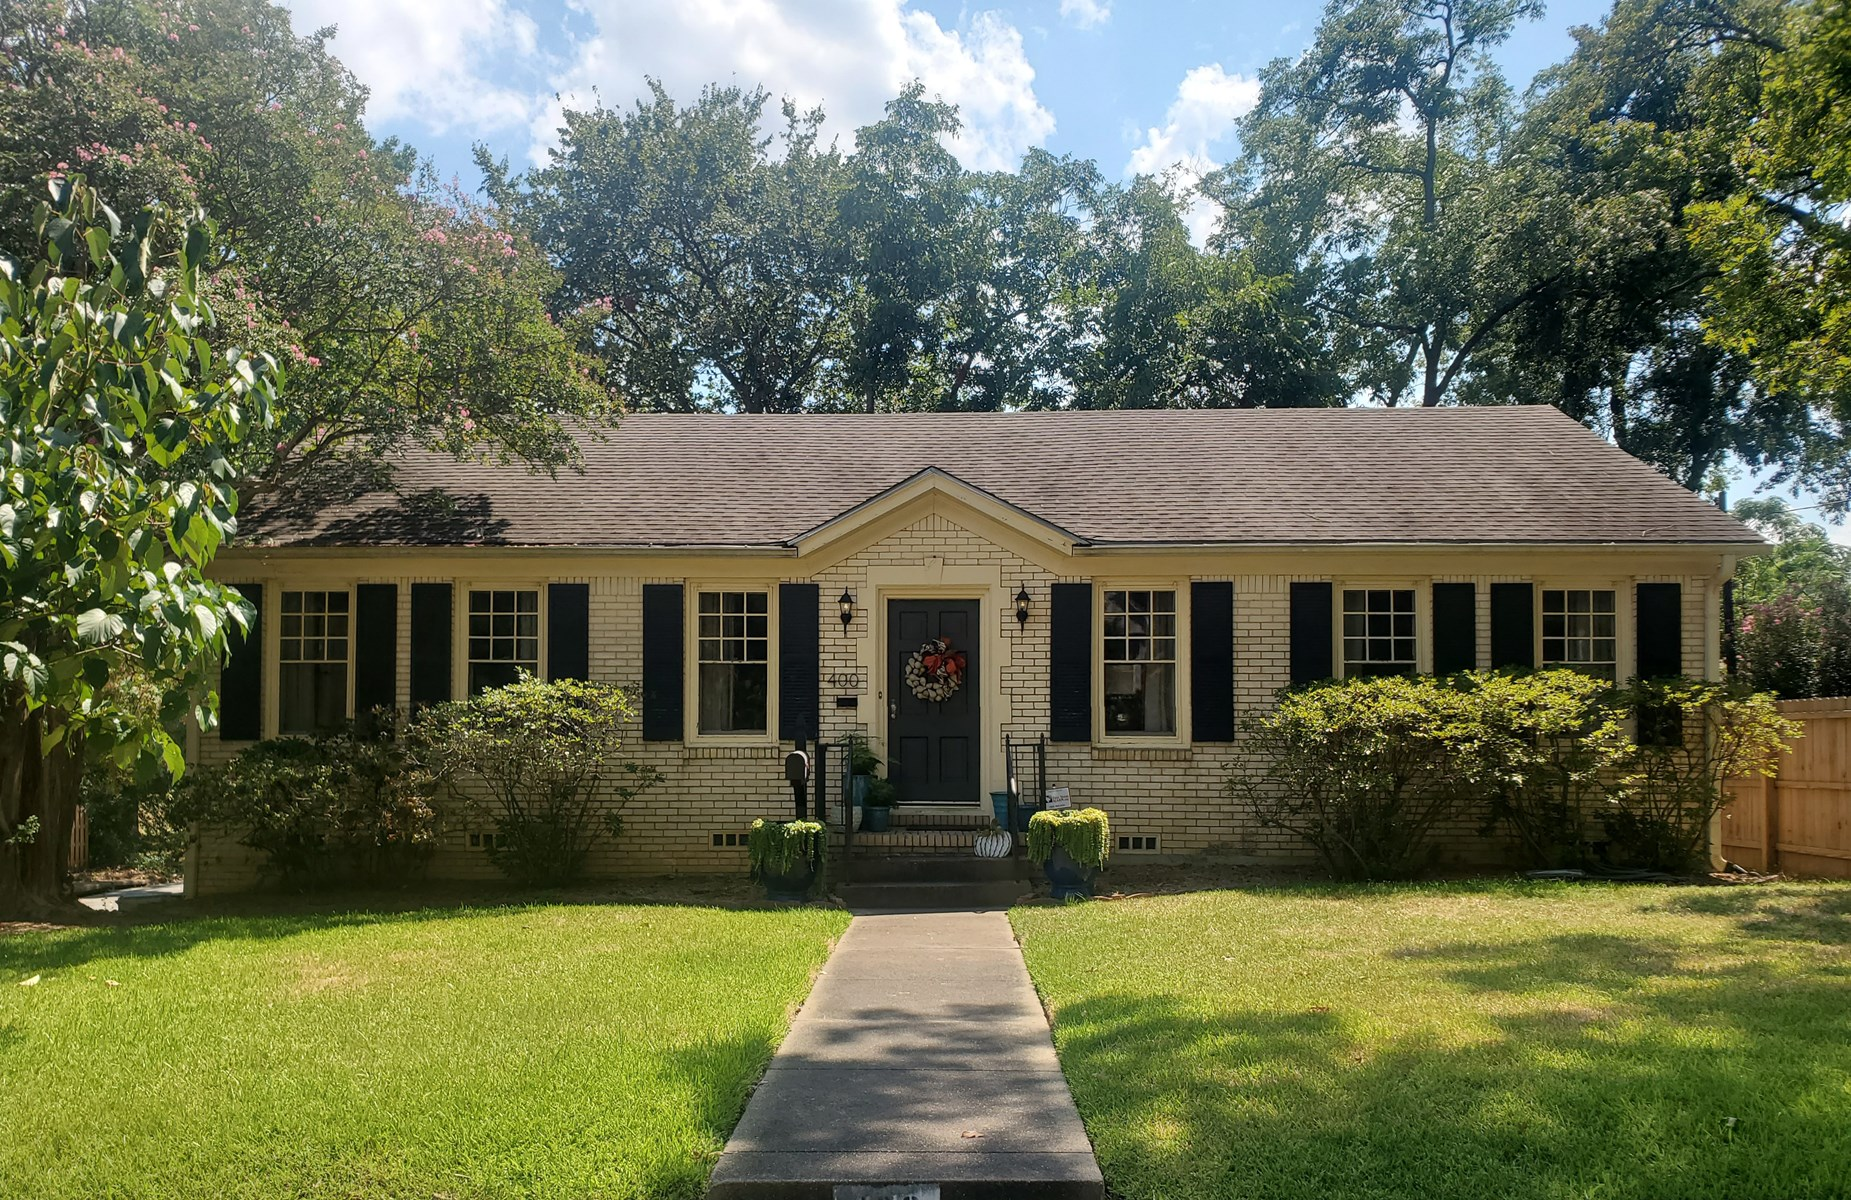 CHARMING HOME IN HISTORIC DOWNTOWN TYLER FOR SALE